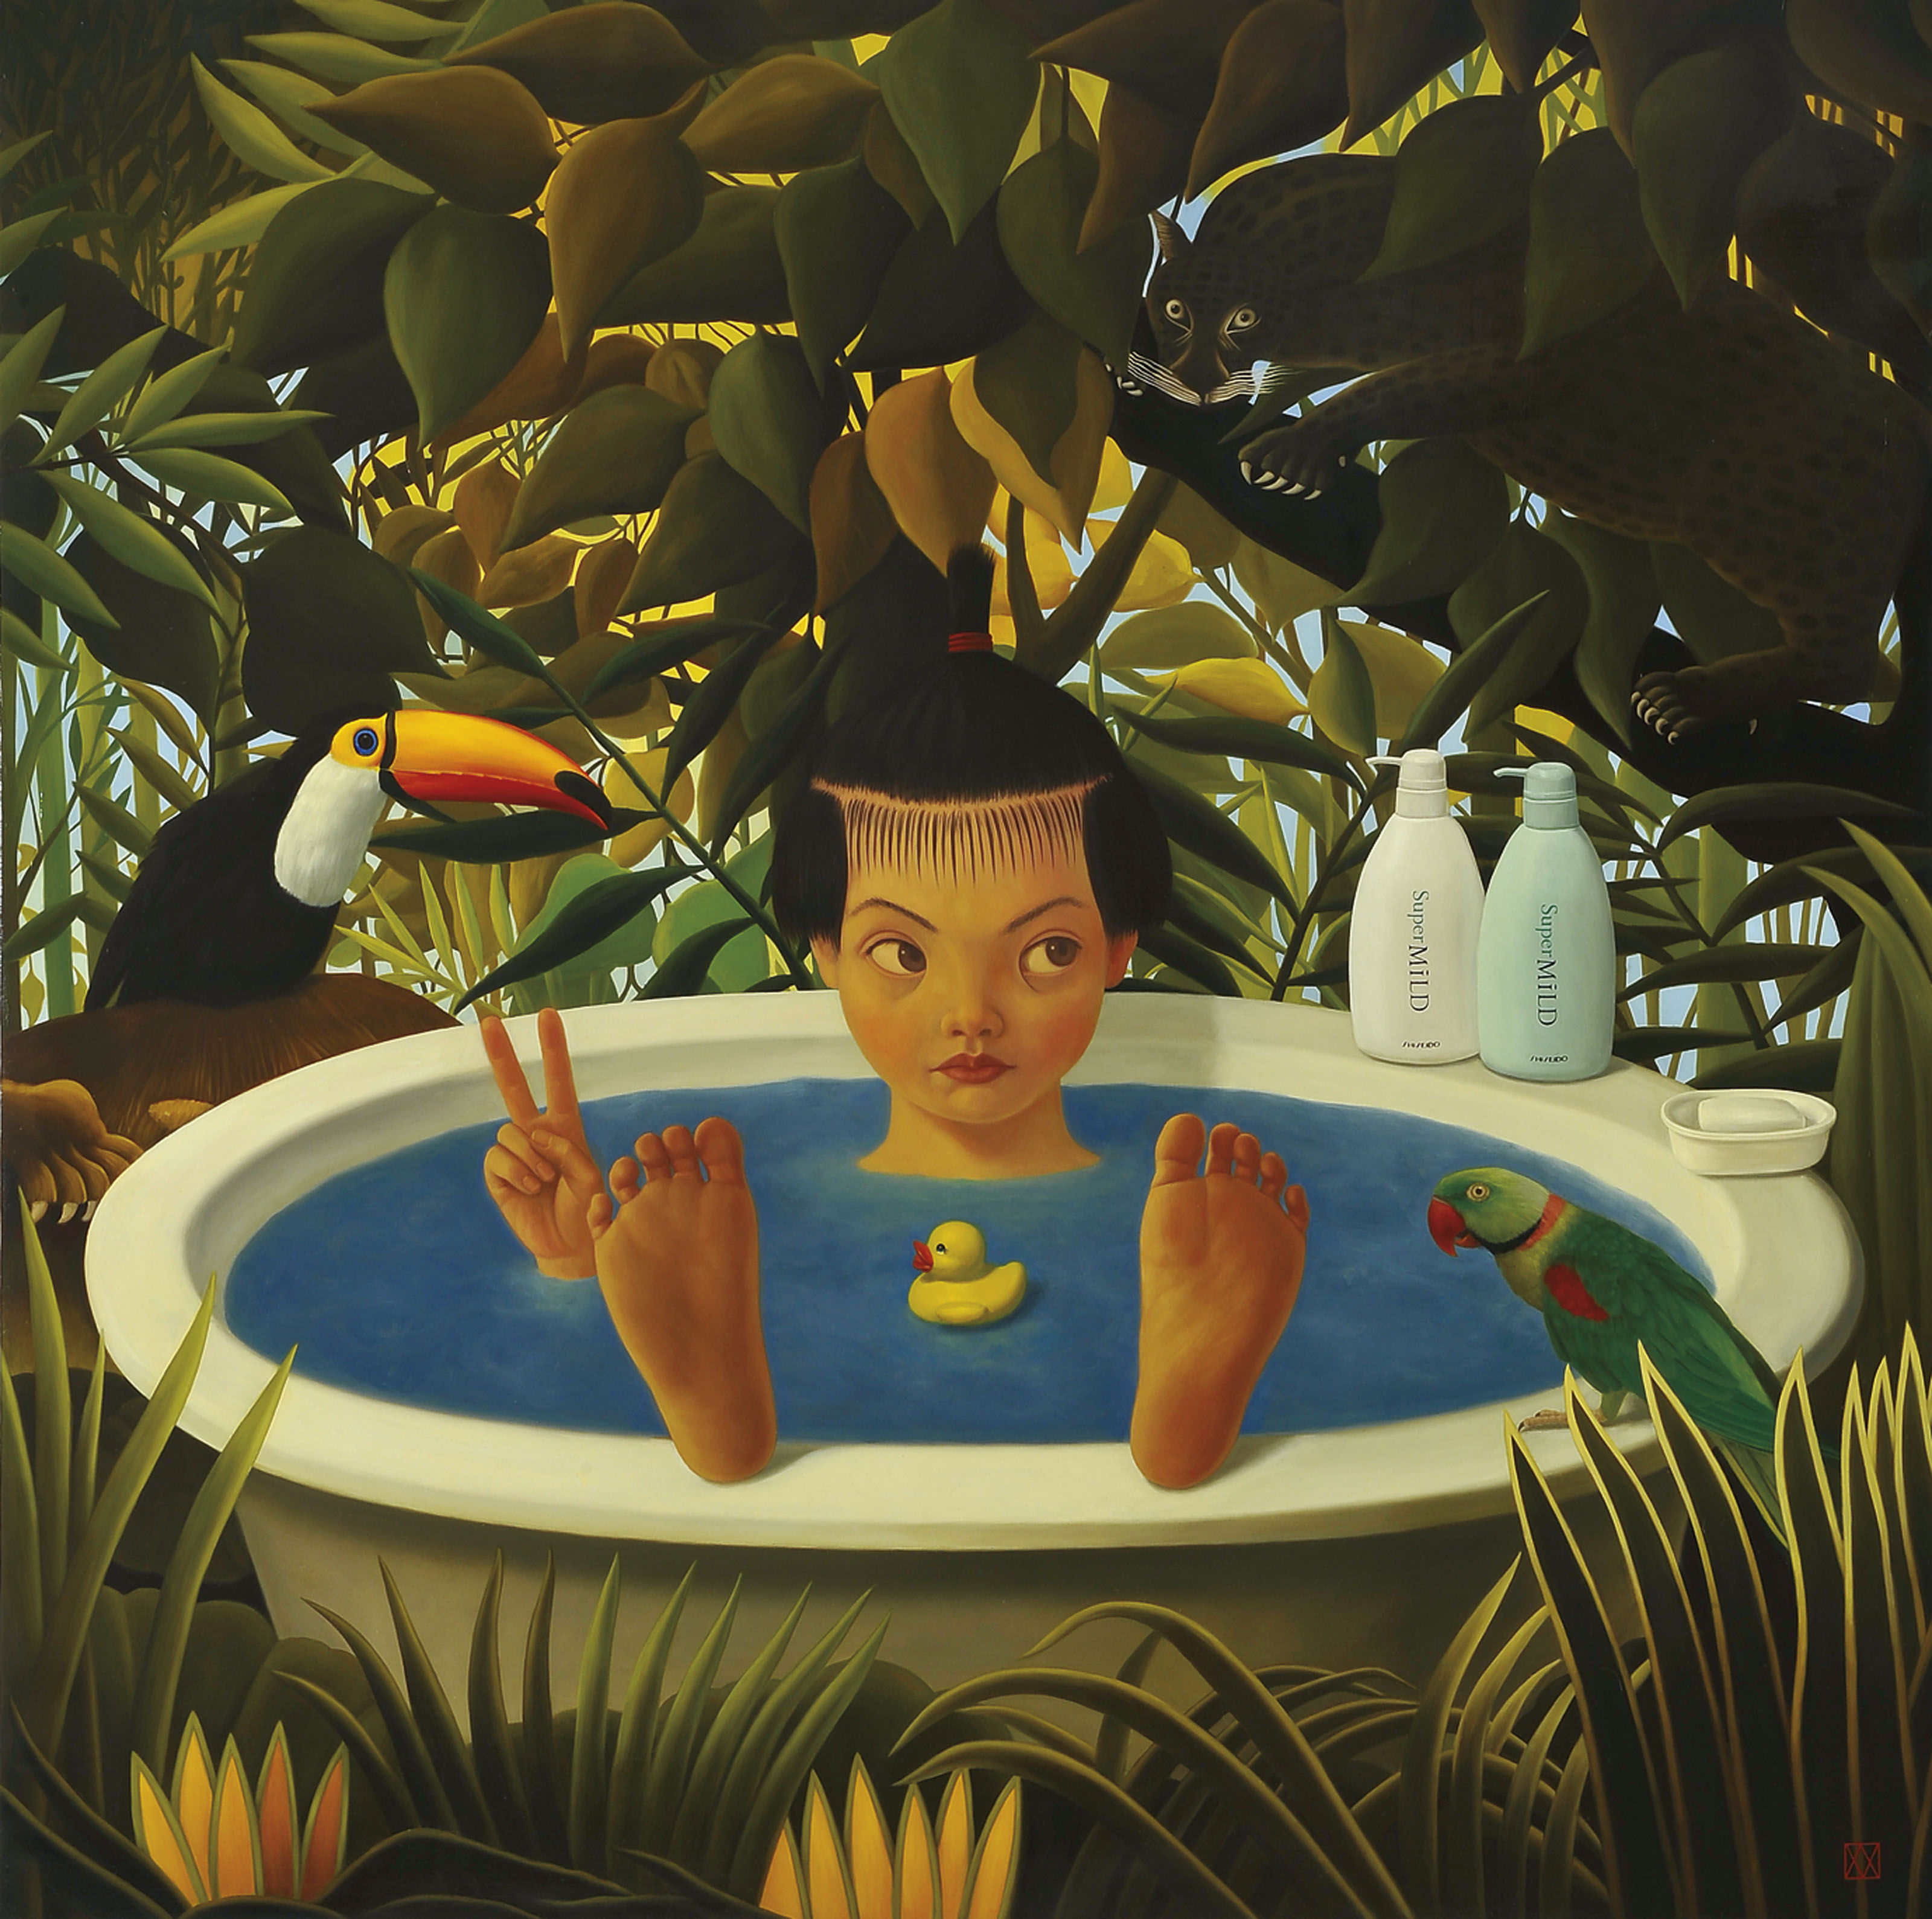 In the Rousseau's forest  Naoko takes a bath